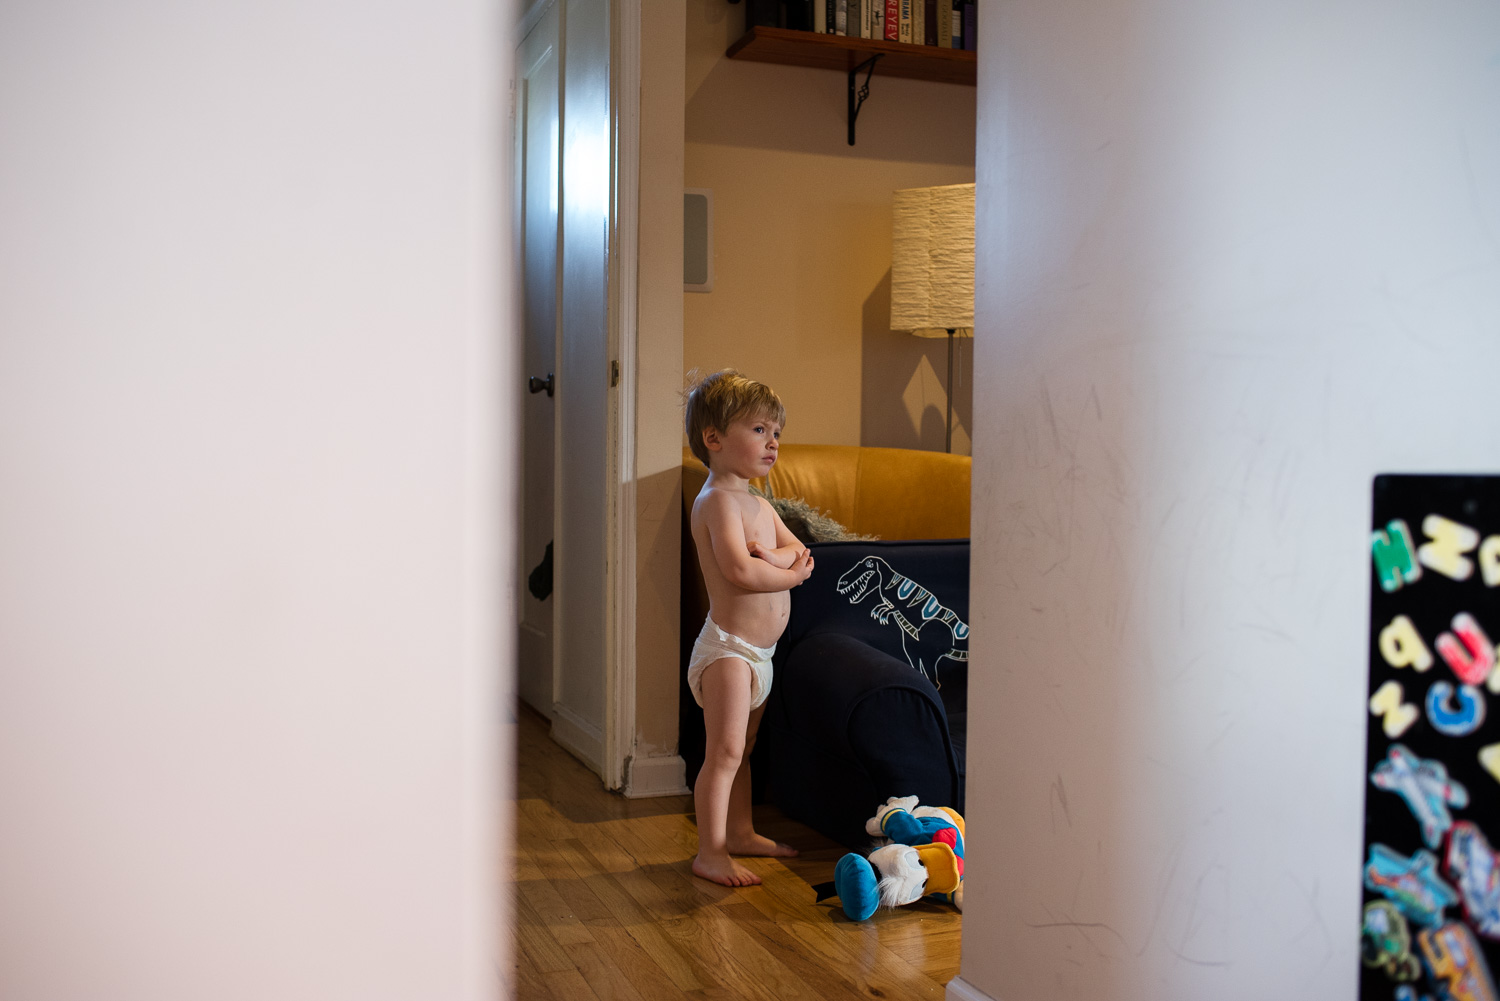 A toddler boy in only a diaper stands and watches TV.